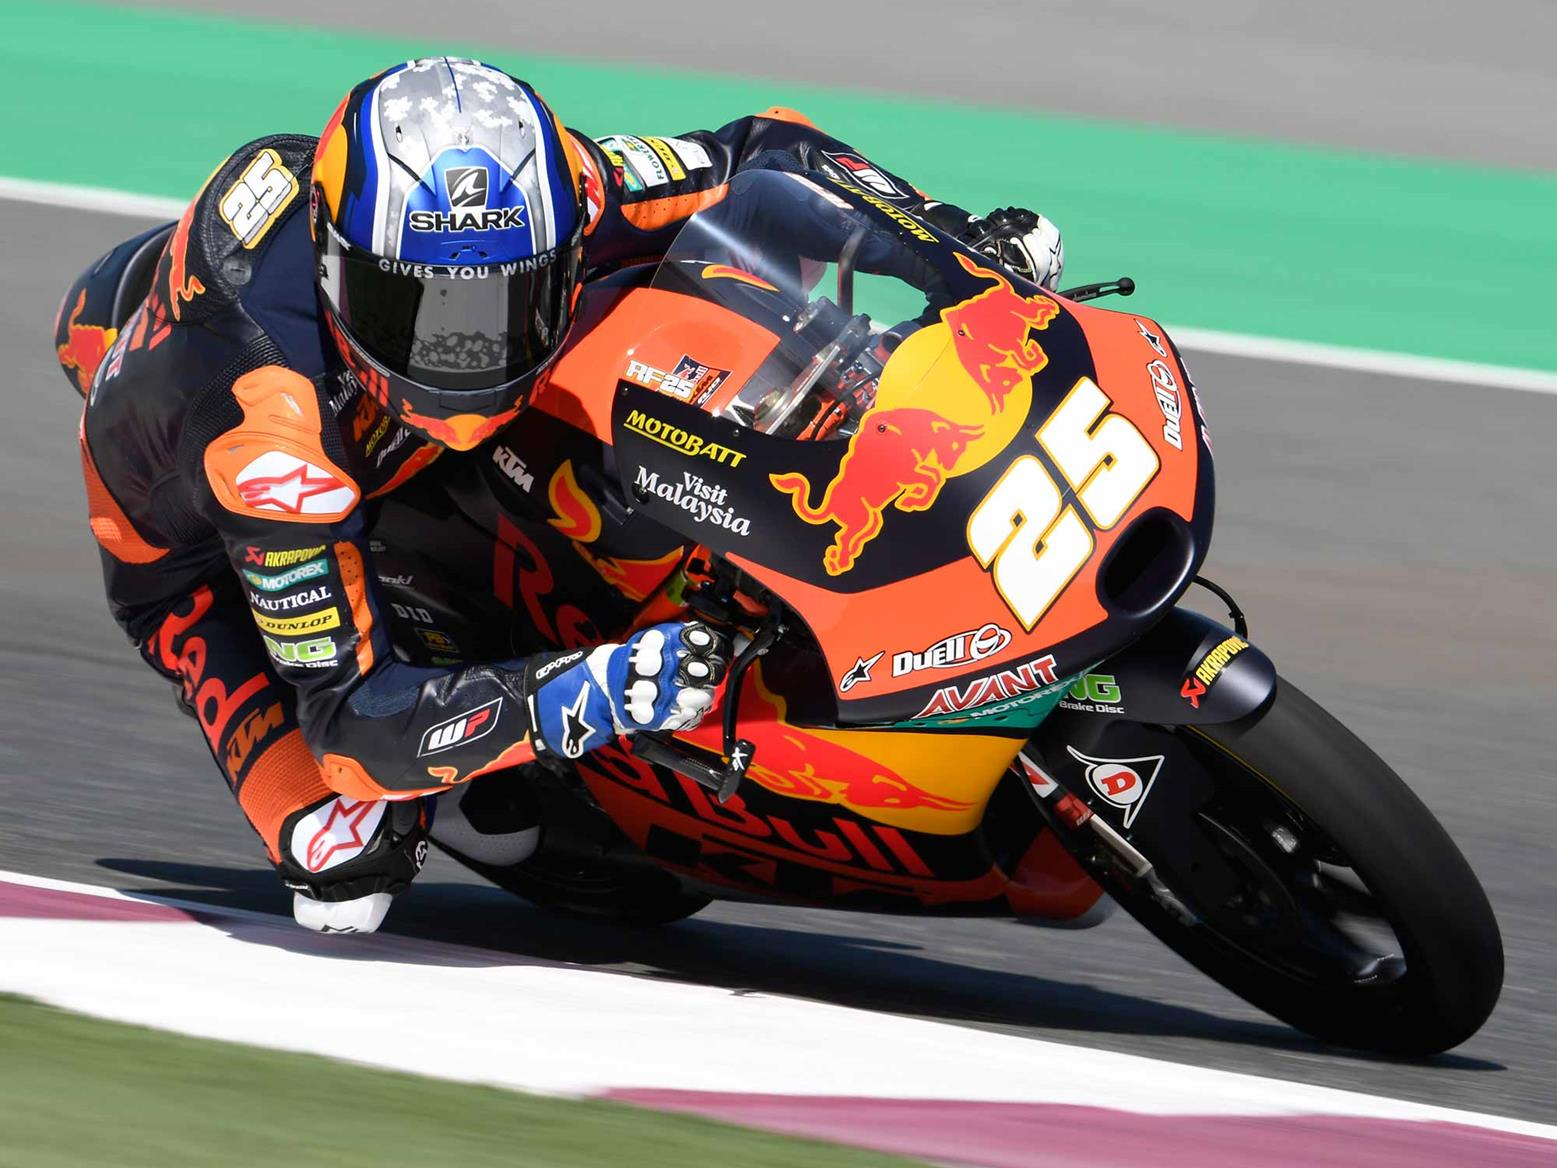 Raul Fernandez tops the opening day of practice in Qatar